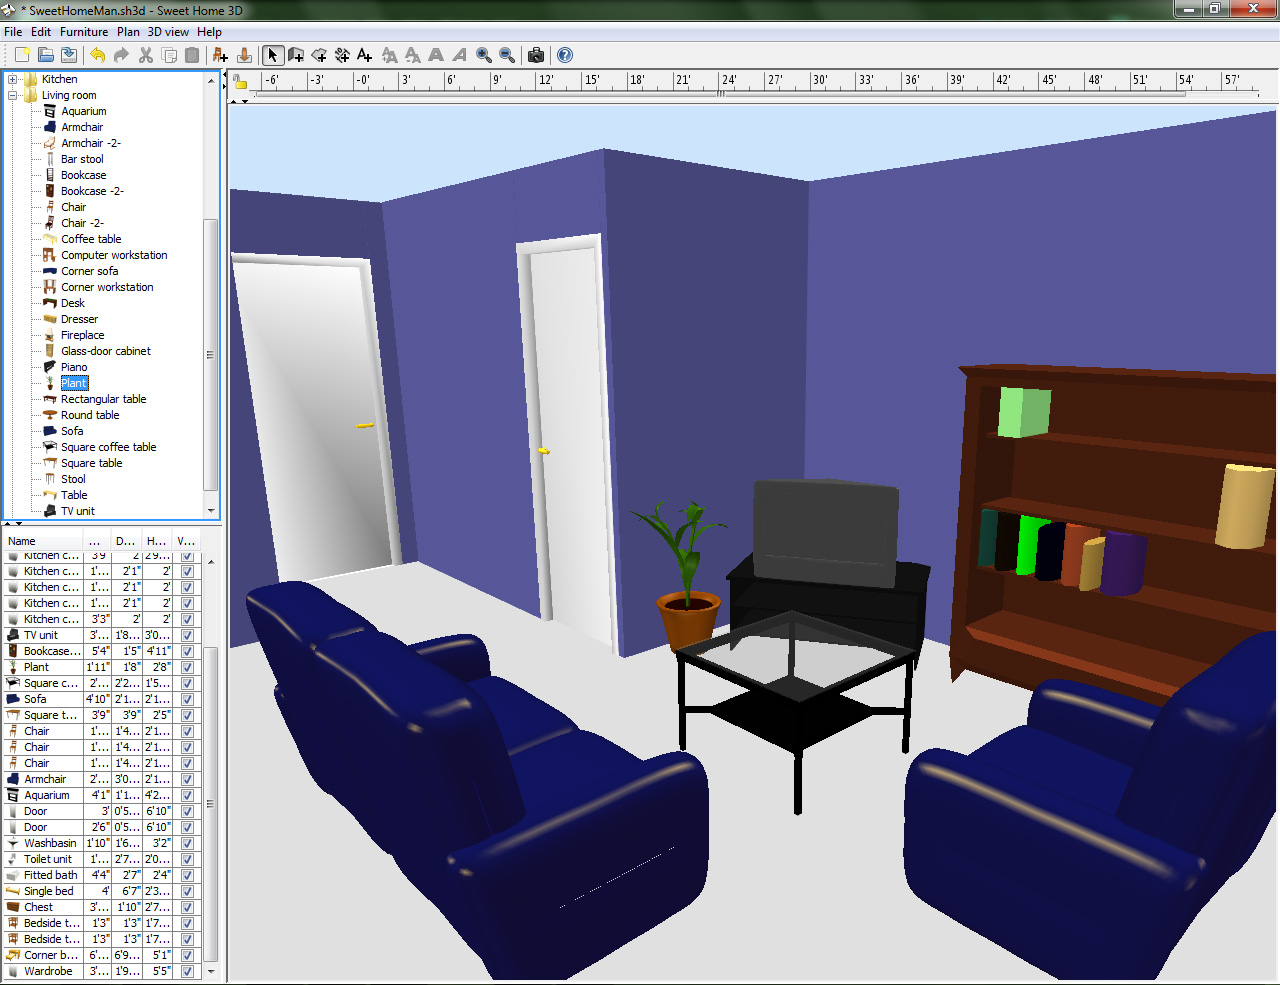 House Interior Design Software: free home design programs